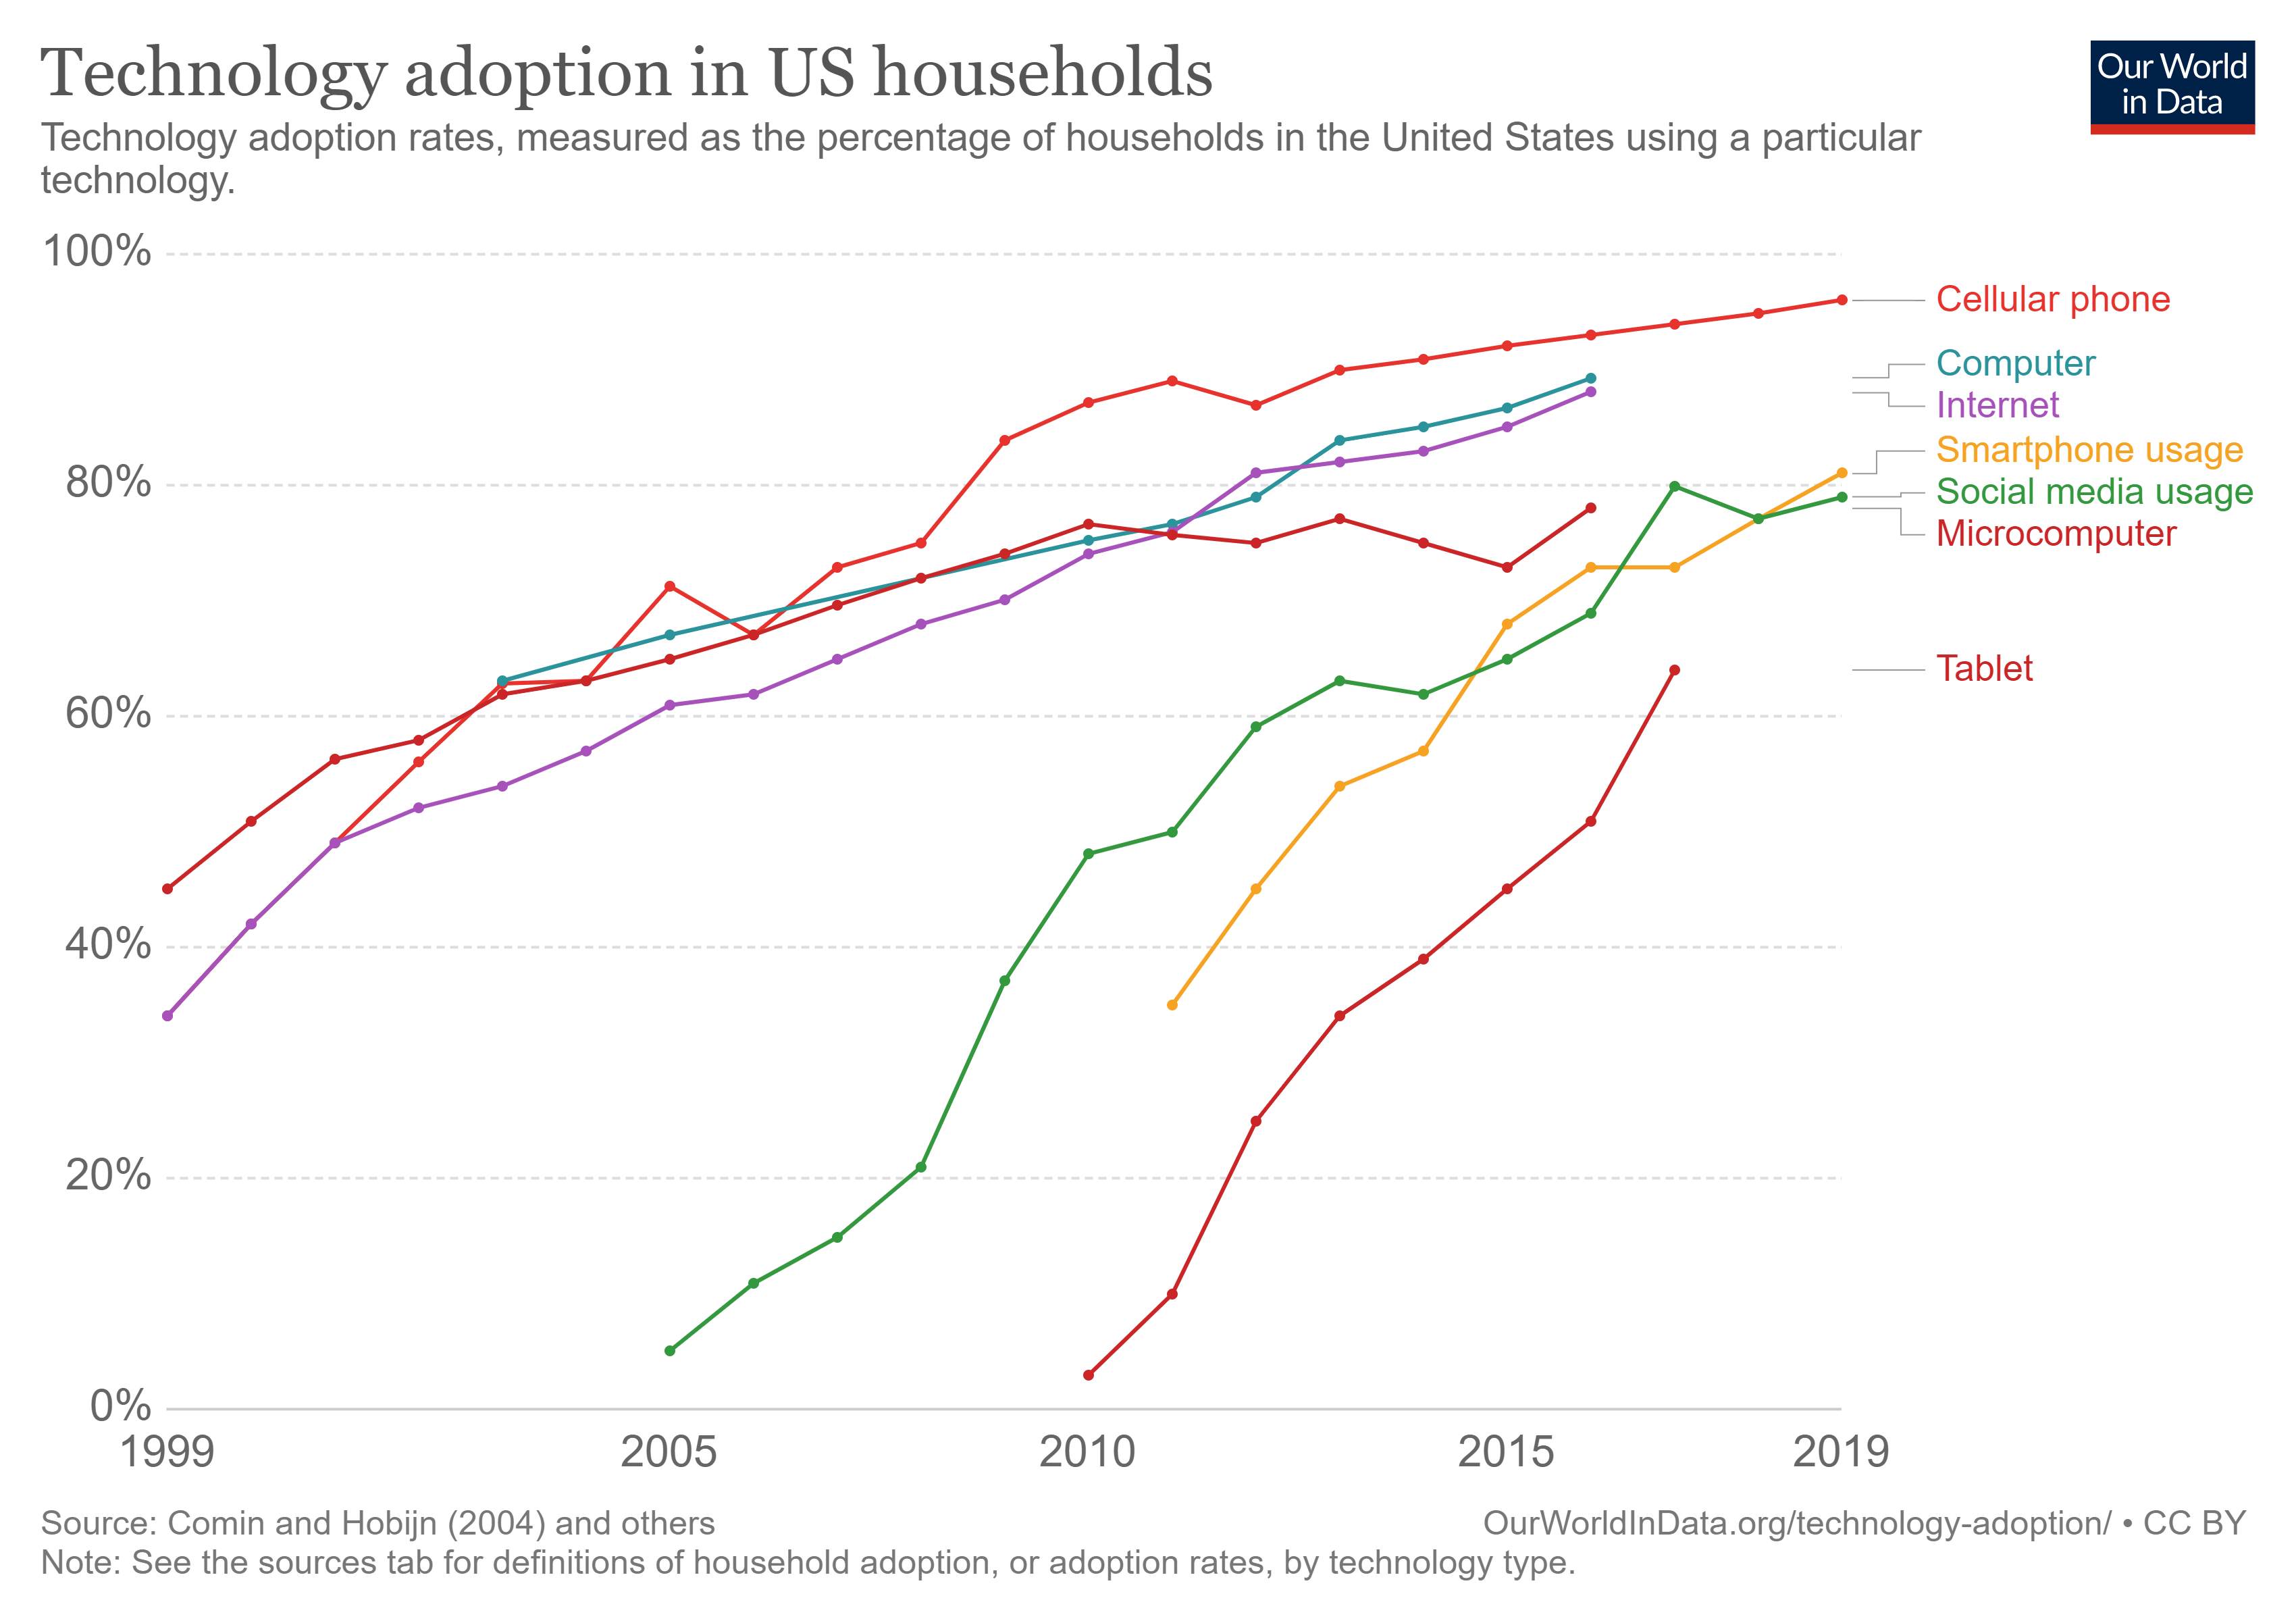 Technology Adoption Rates in US Households